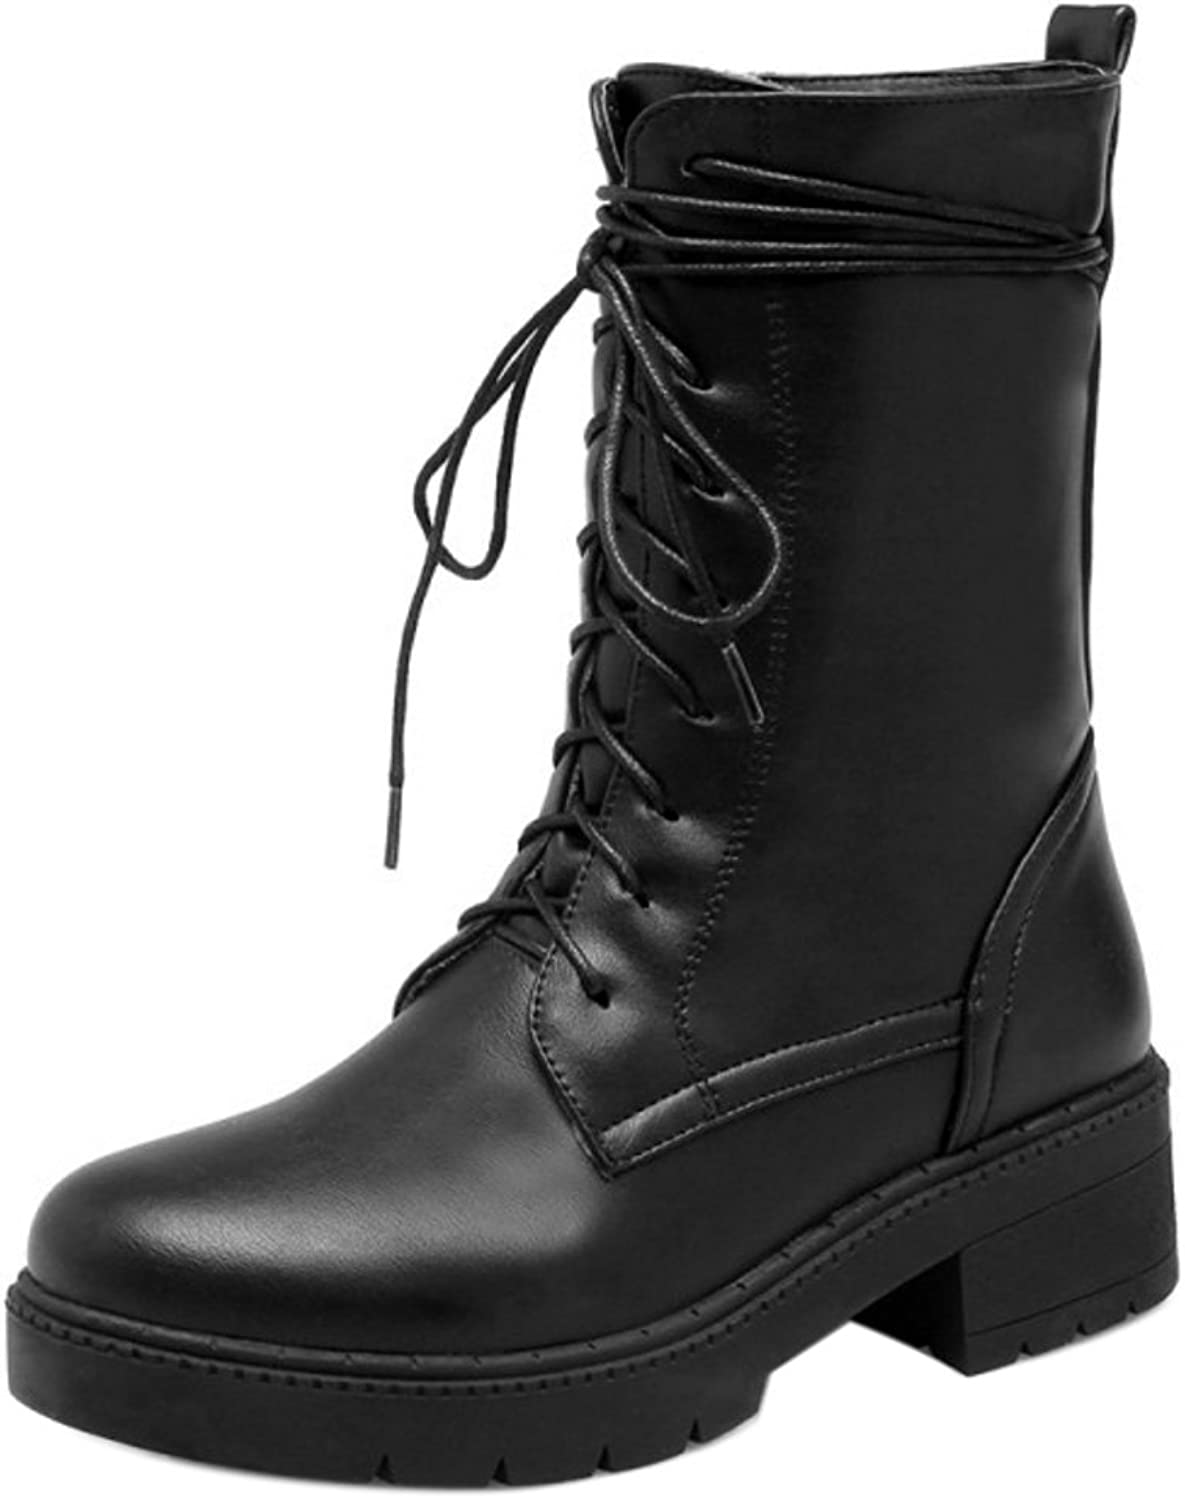 Cular Acci Women Winter Lace Up Boots Warm Lined